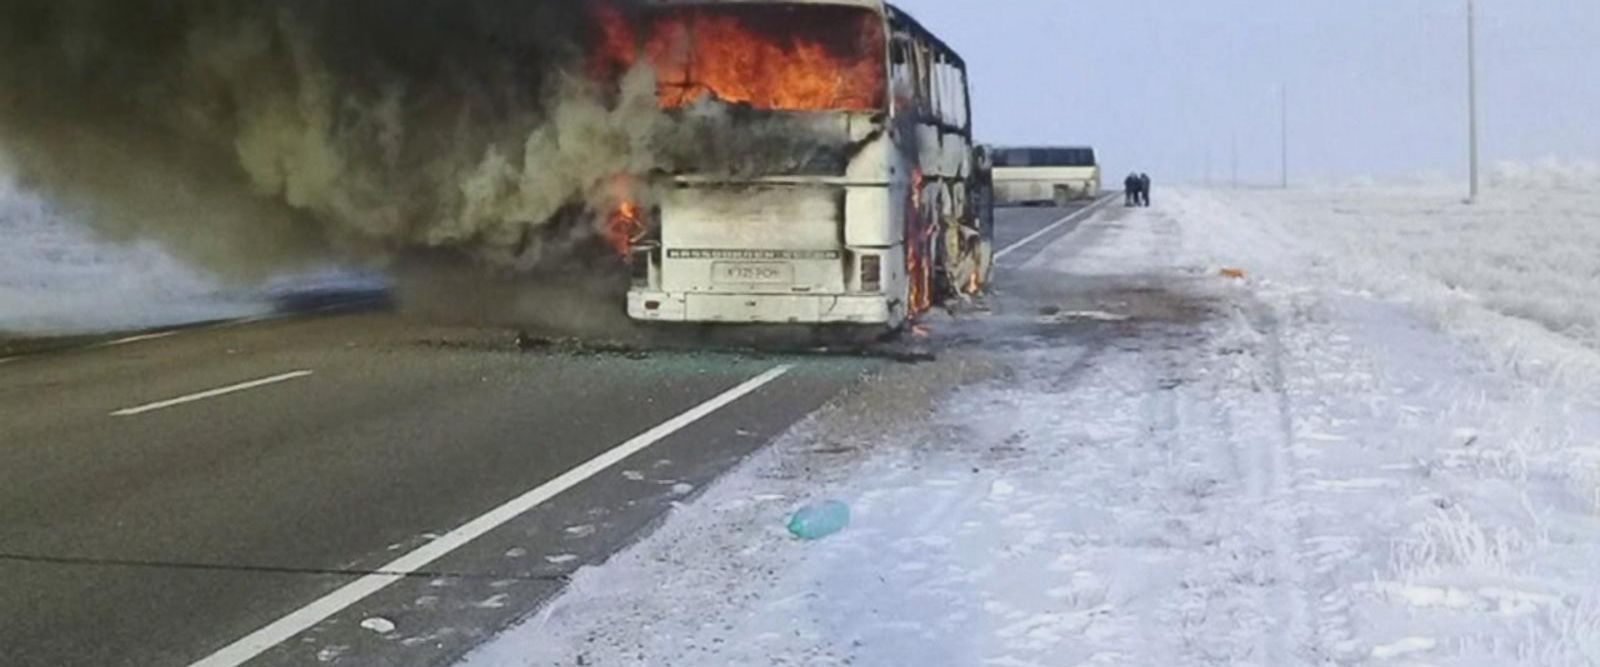 At least 52 people died when their moving bus caught fire in Kazakhstan today in one of the region's deadliest bus accidents in years.